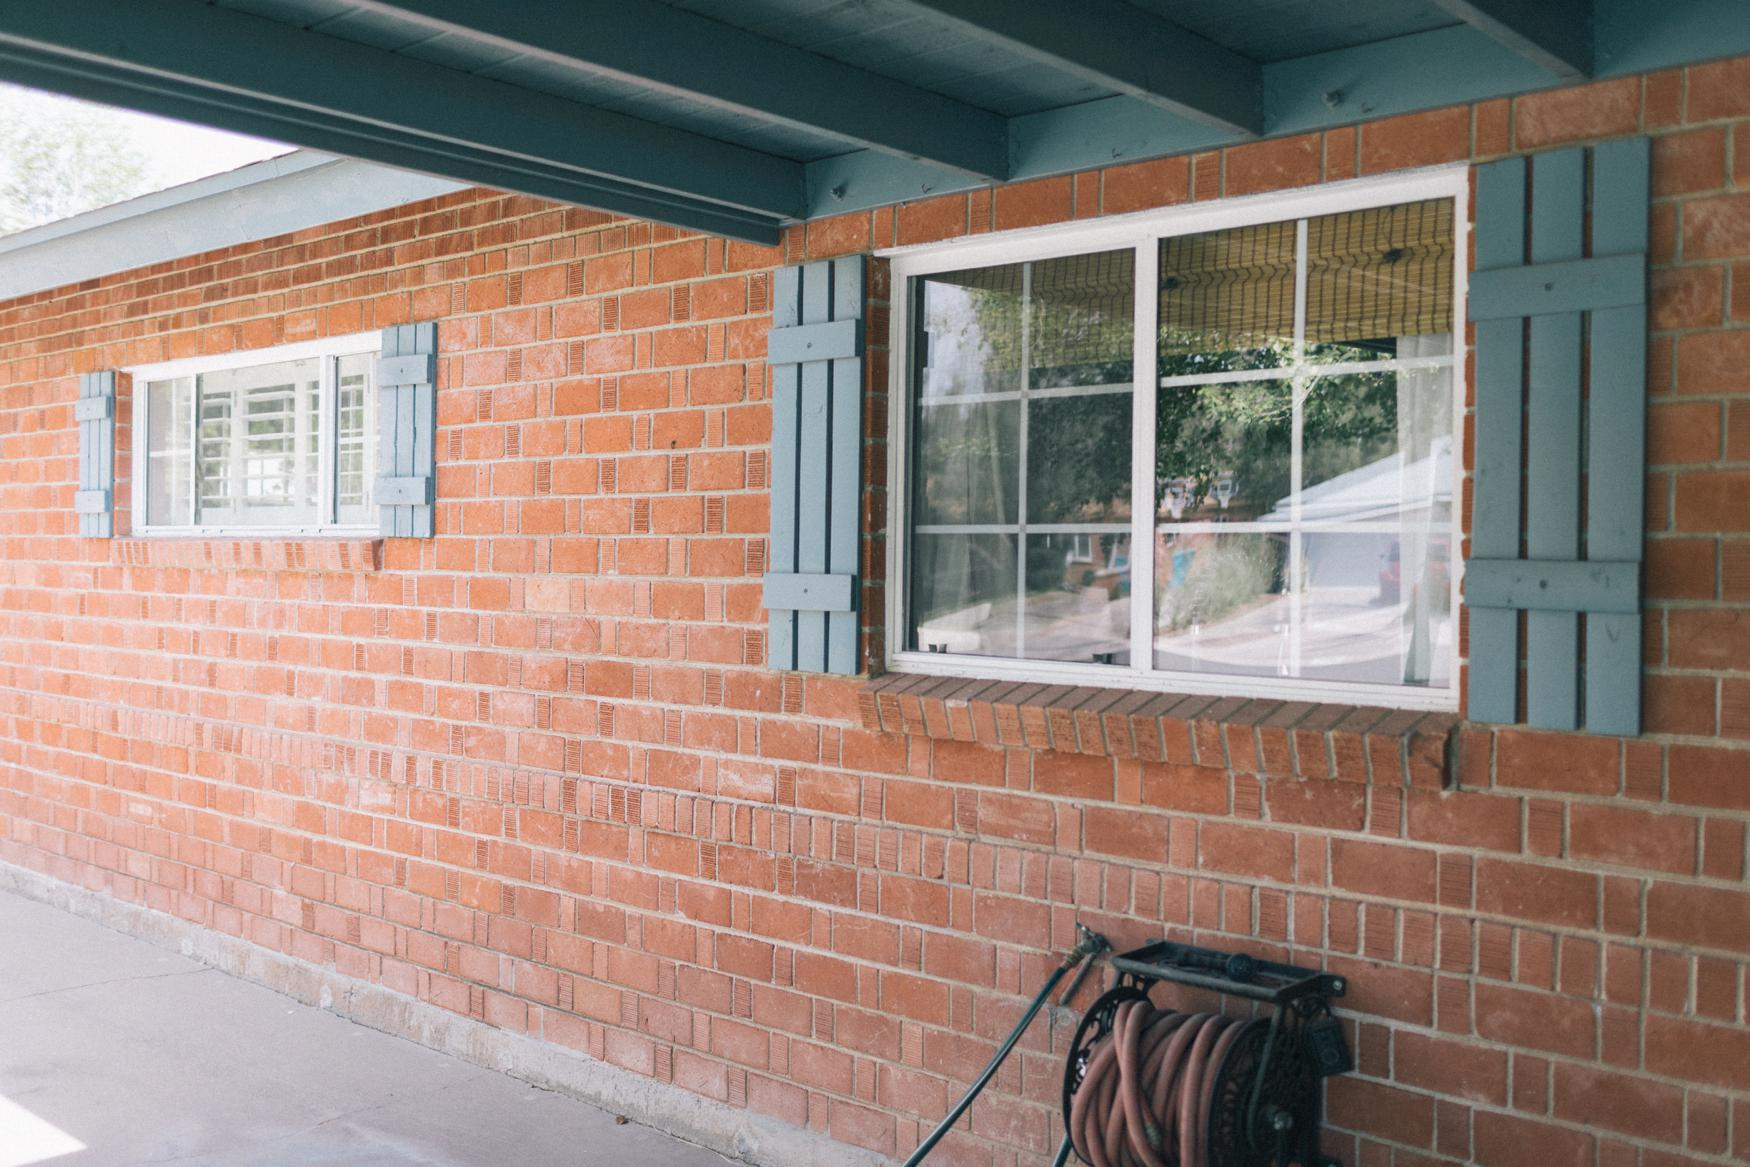 adding window panes to already existing windows so easy with New Panes. A review on the blog of before and afters